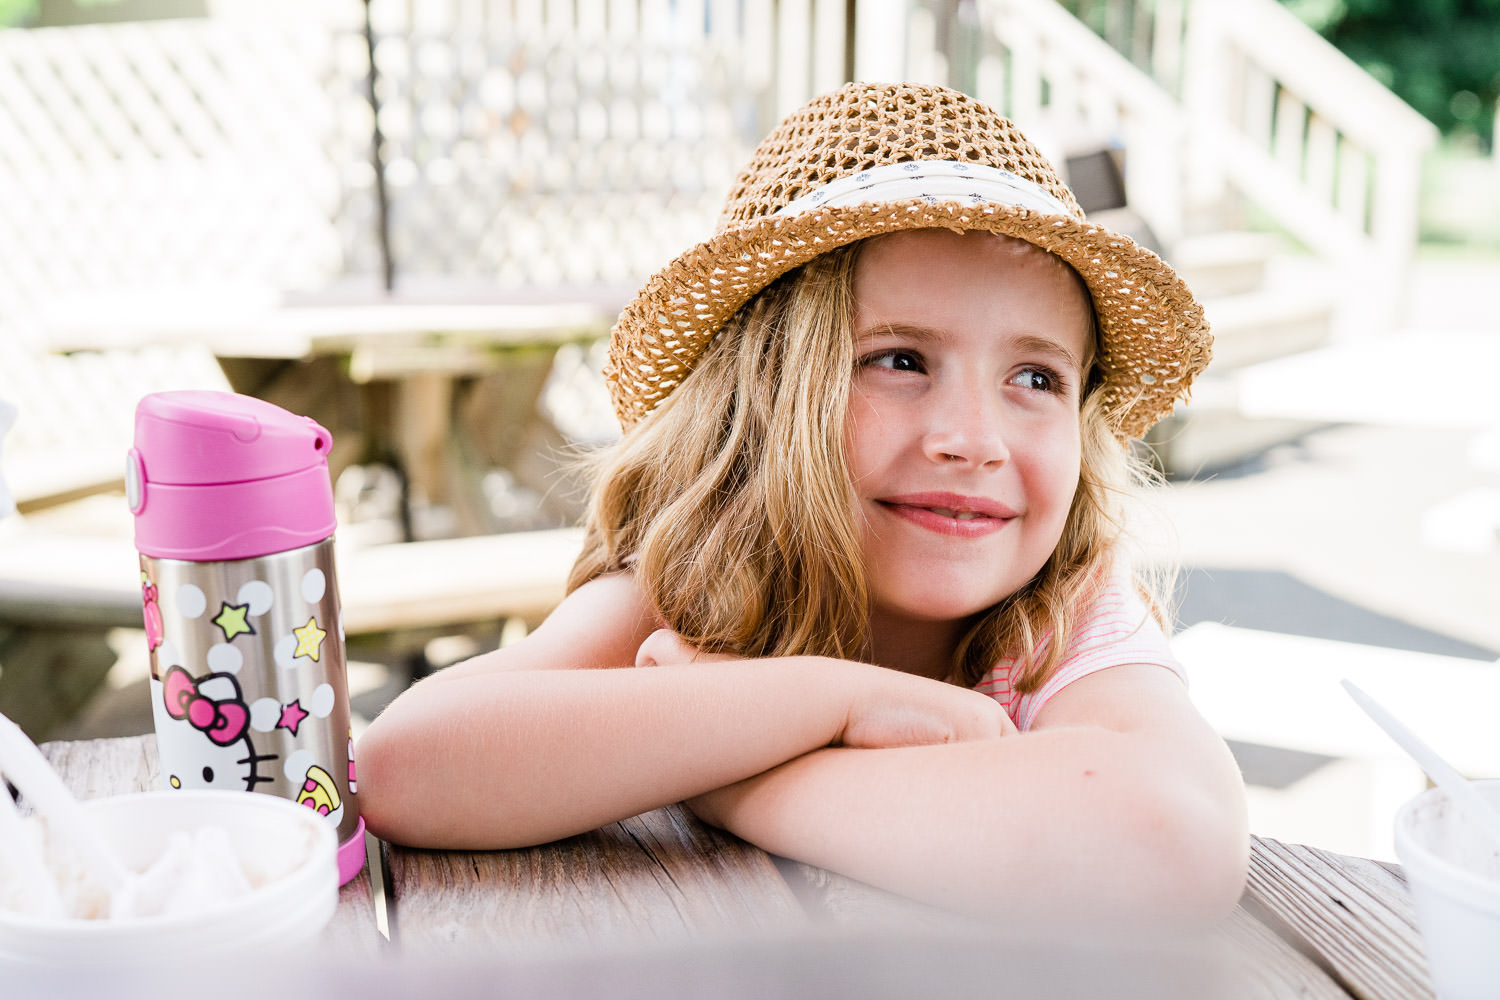 A little girl smiles at a picnic table.